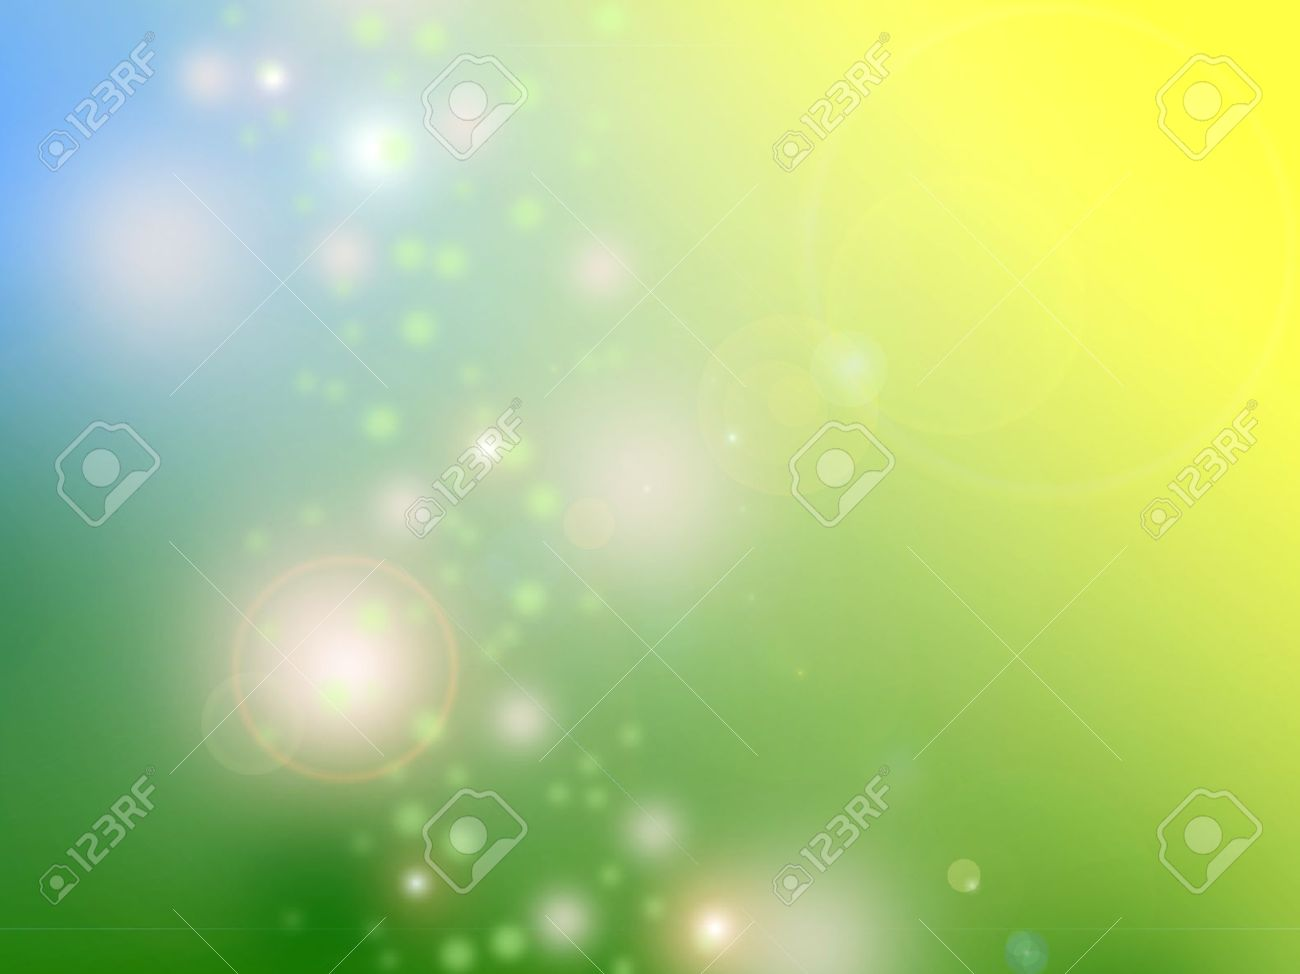 Abstract Background Design In Cheerful Spring Colors Stock Photo